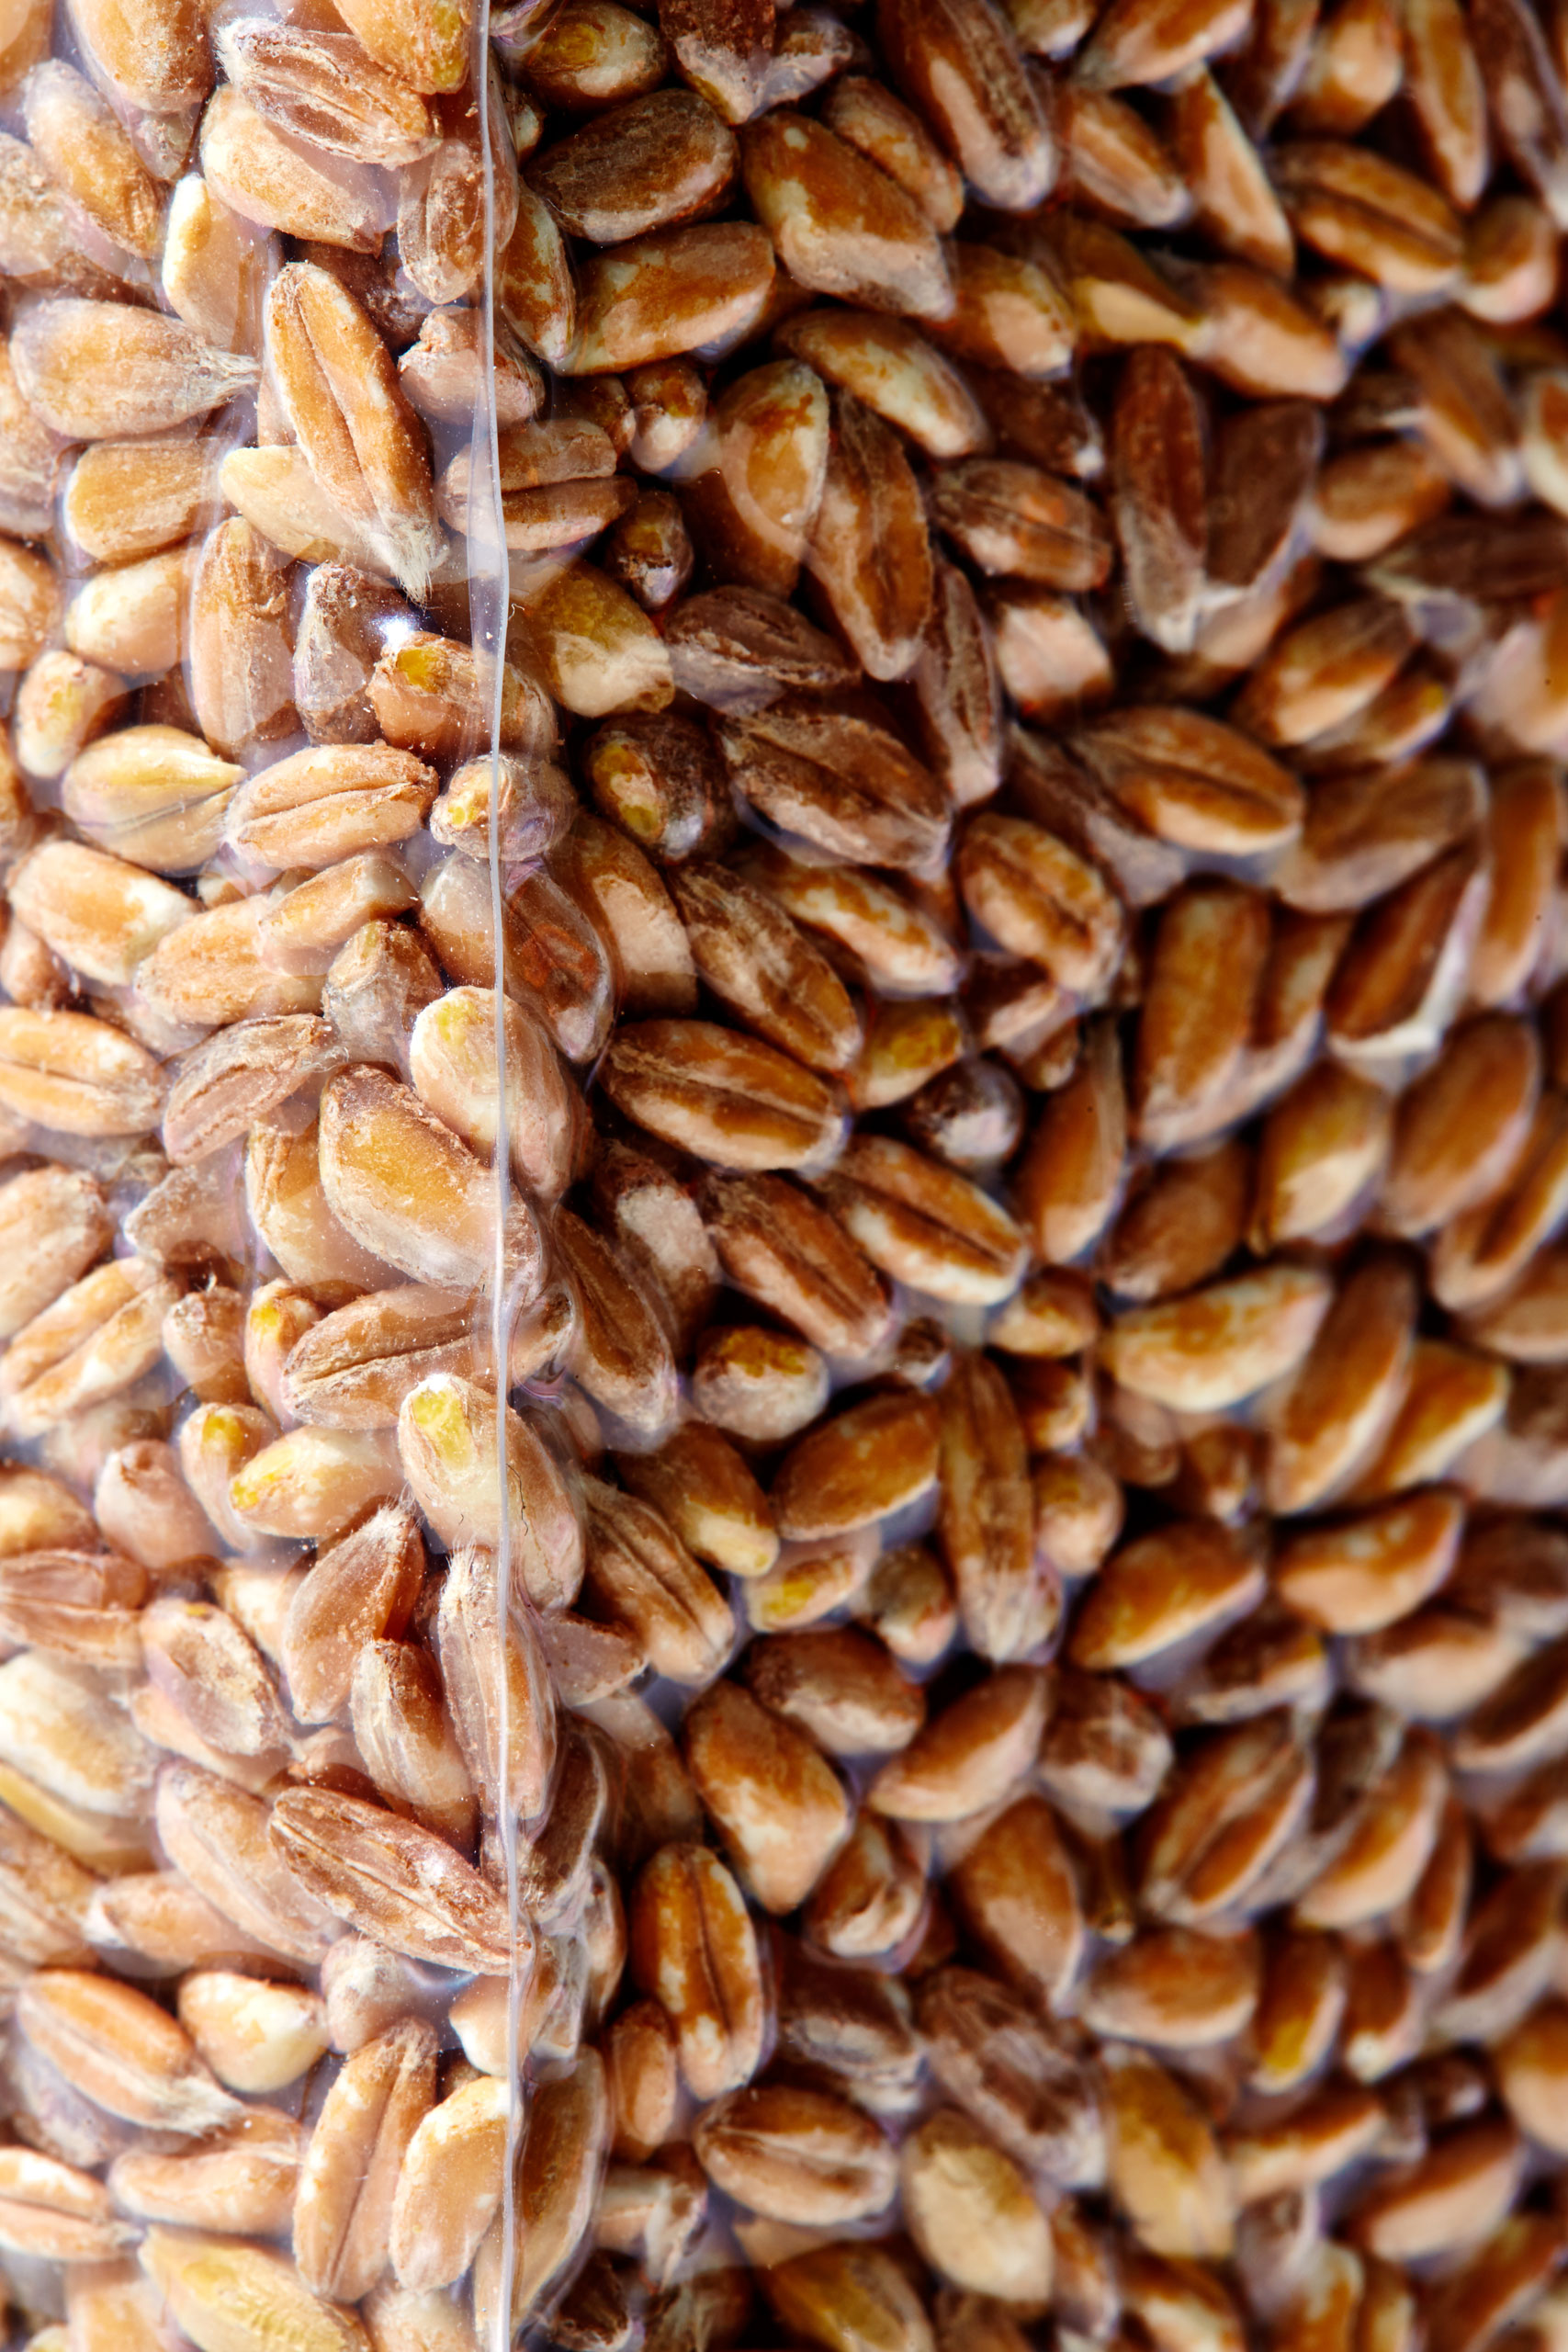 healthiest foods, health food, diet, nutrition, time.com stock, farro, grains